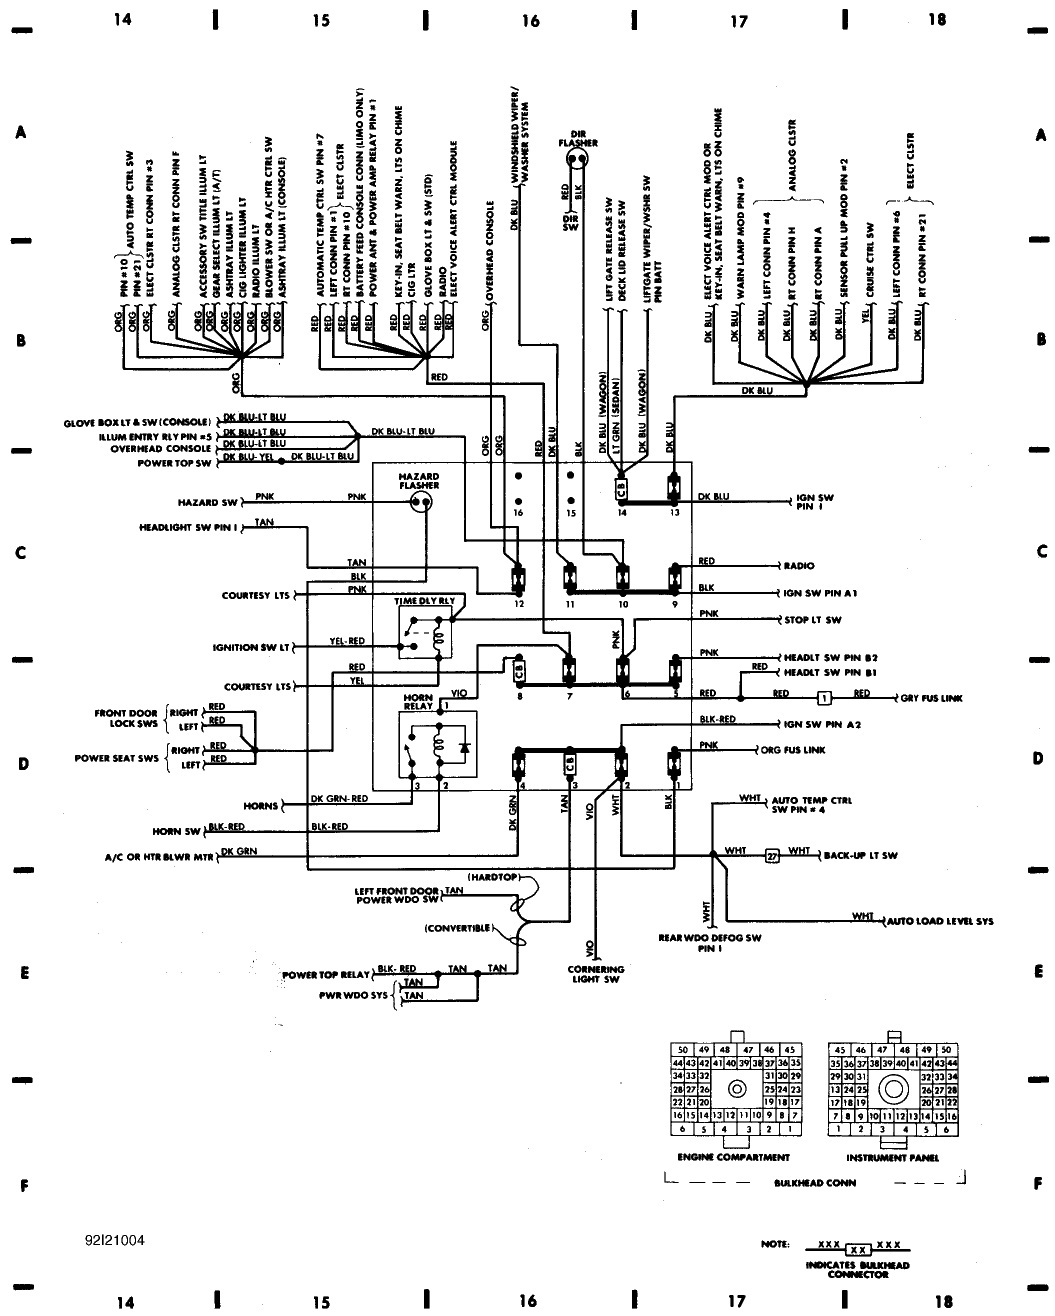 1989 F250 Wiring Harness Diagram in addition 94 Chrysler Lebaron Parts additionally 1977 Dodge Ignition Wiring Diagram besides Please Help Wiring Problem 1973 Dodge Charger 8670 also 56459. on mopar ignition switch wiring diagram